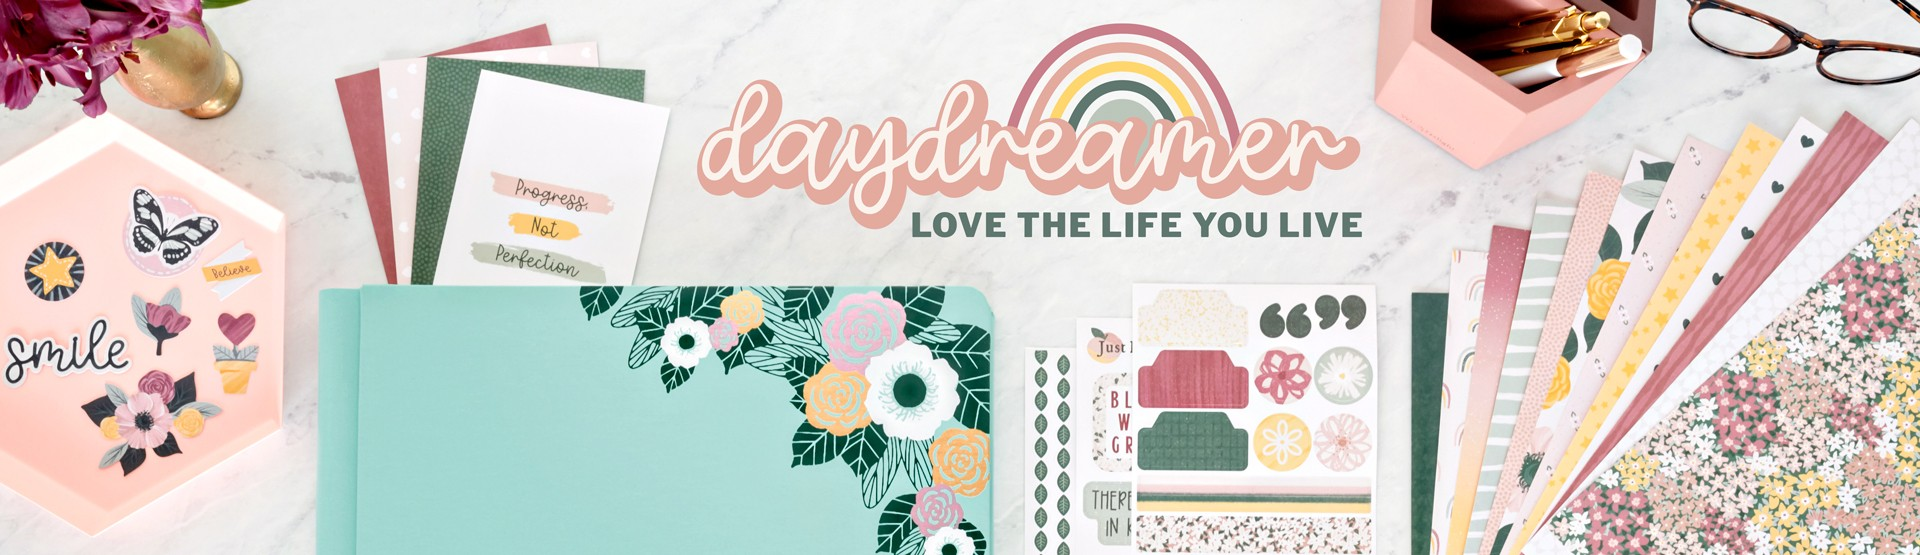 All Occasions & Inspirational: Daydreamer